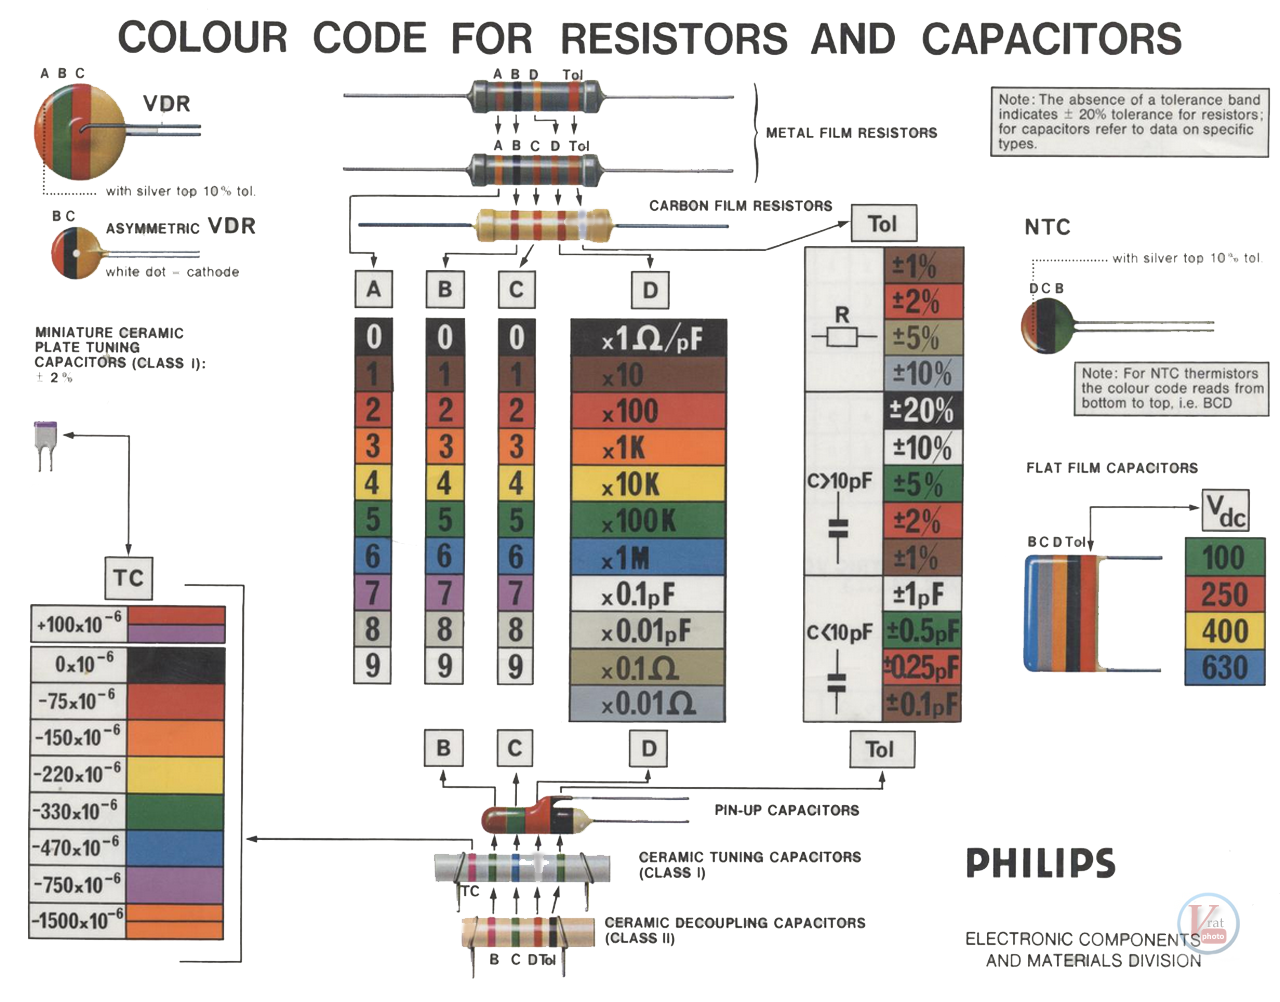 Resistor Capacitor & VDR Colour Codes 1